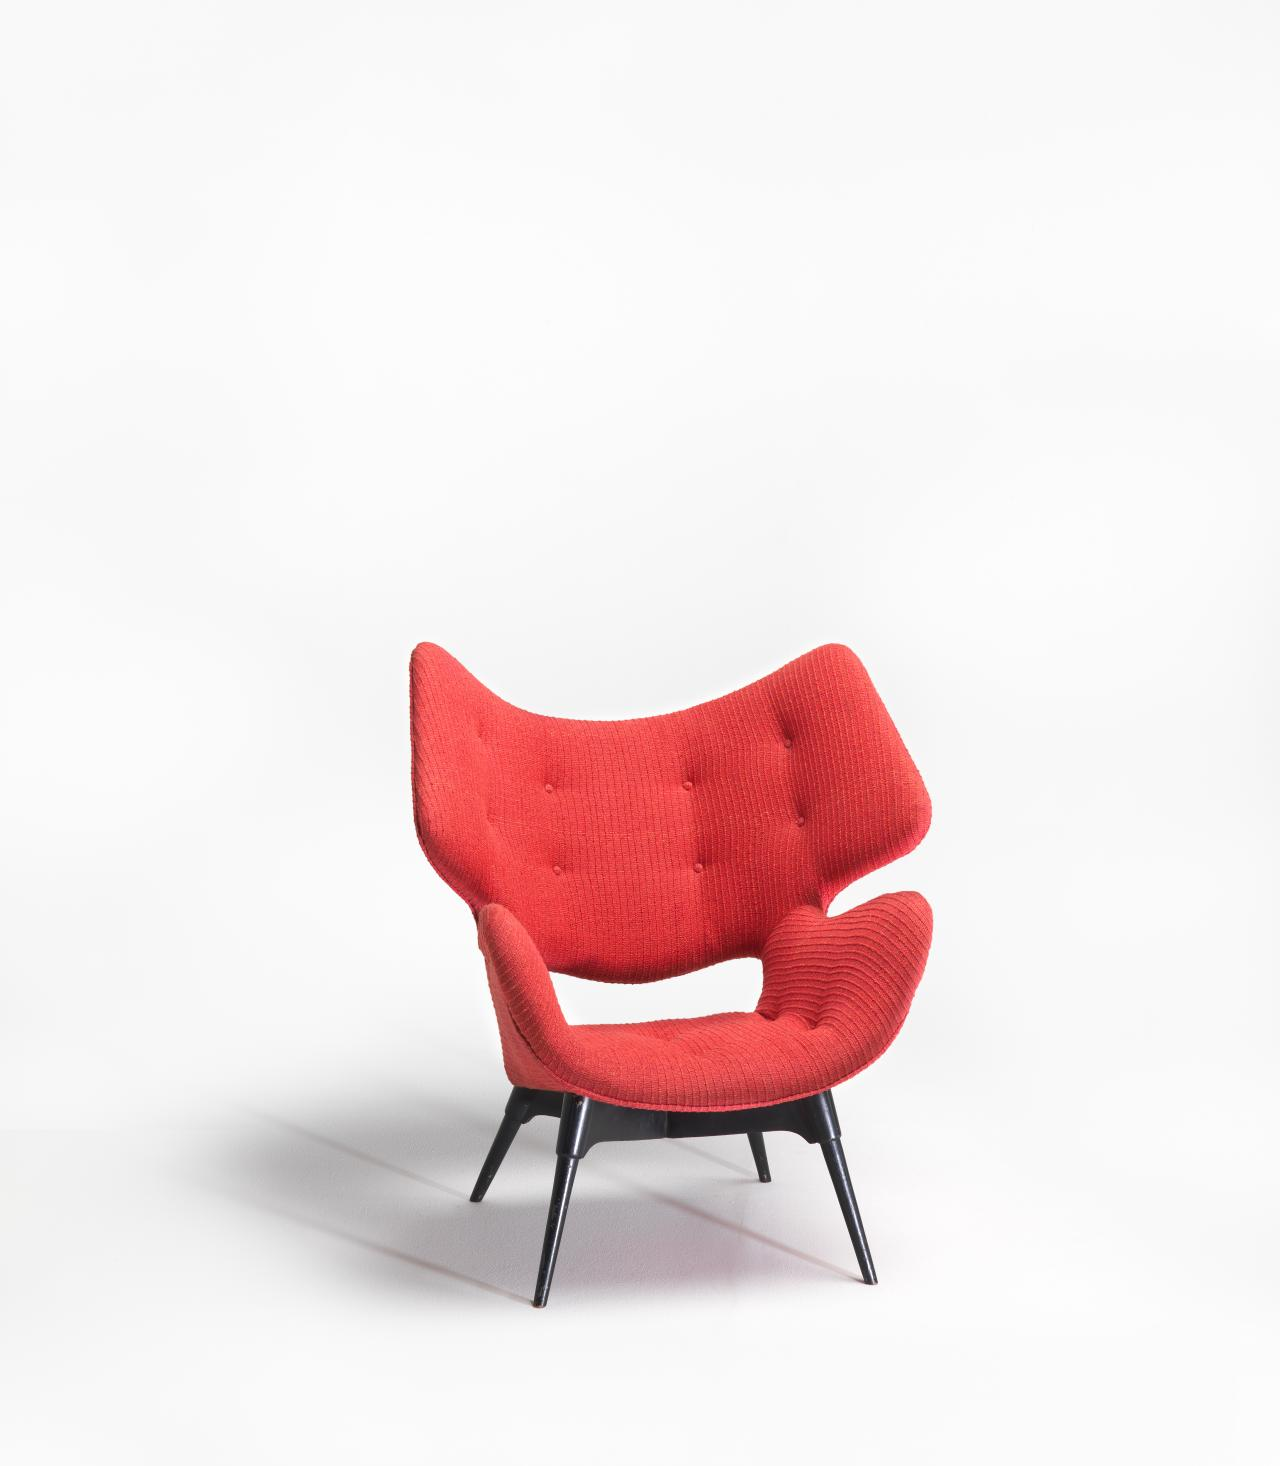 B220h Curl Up Contour Chair